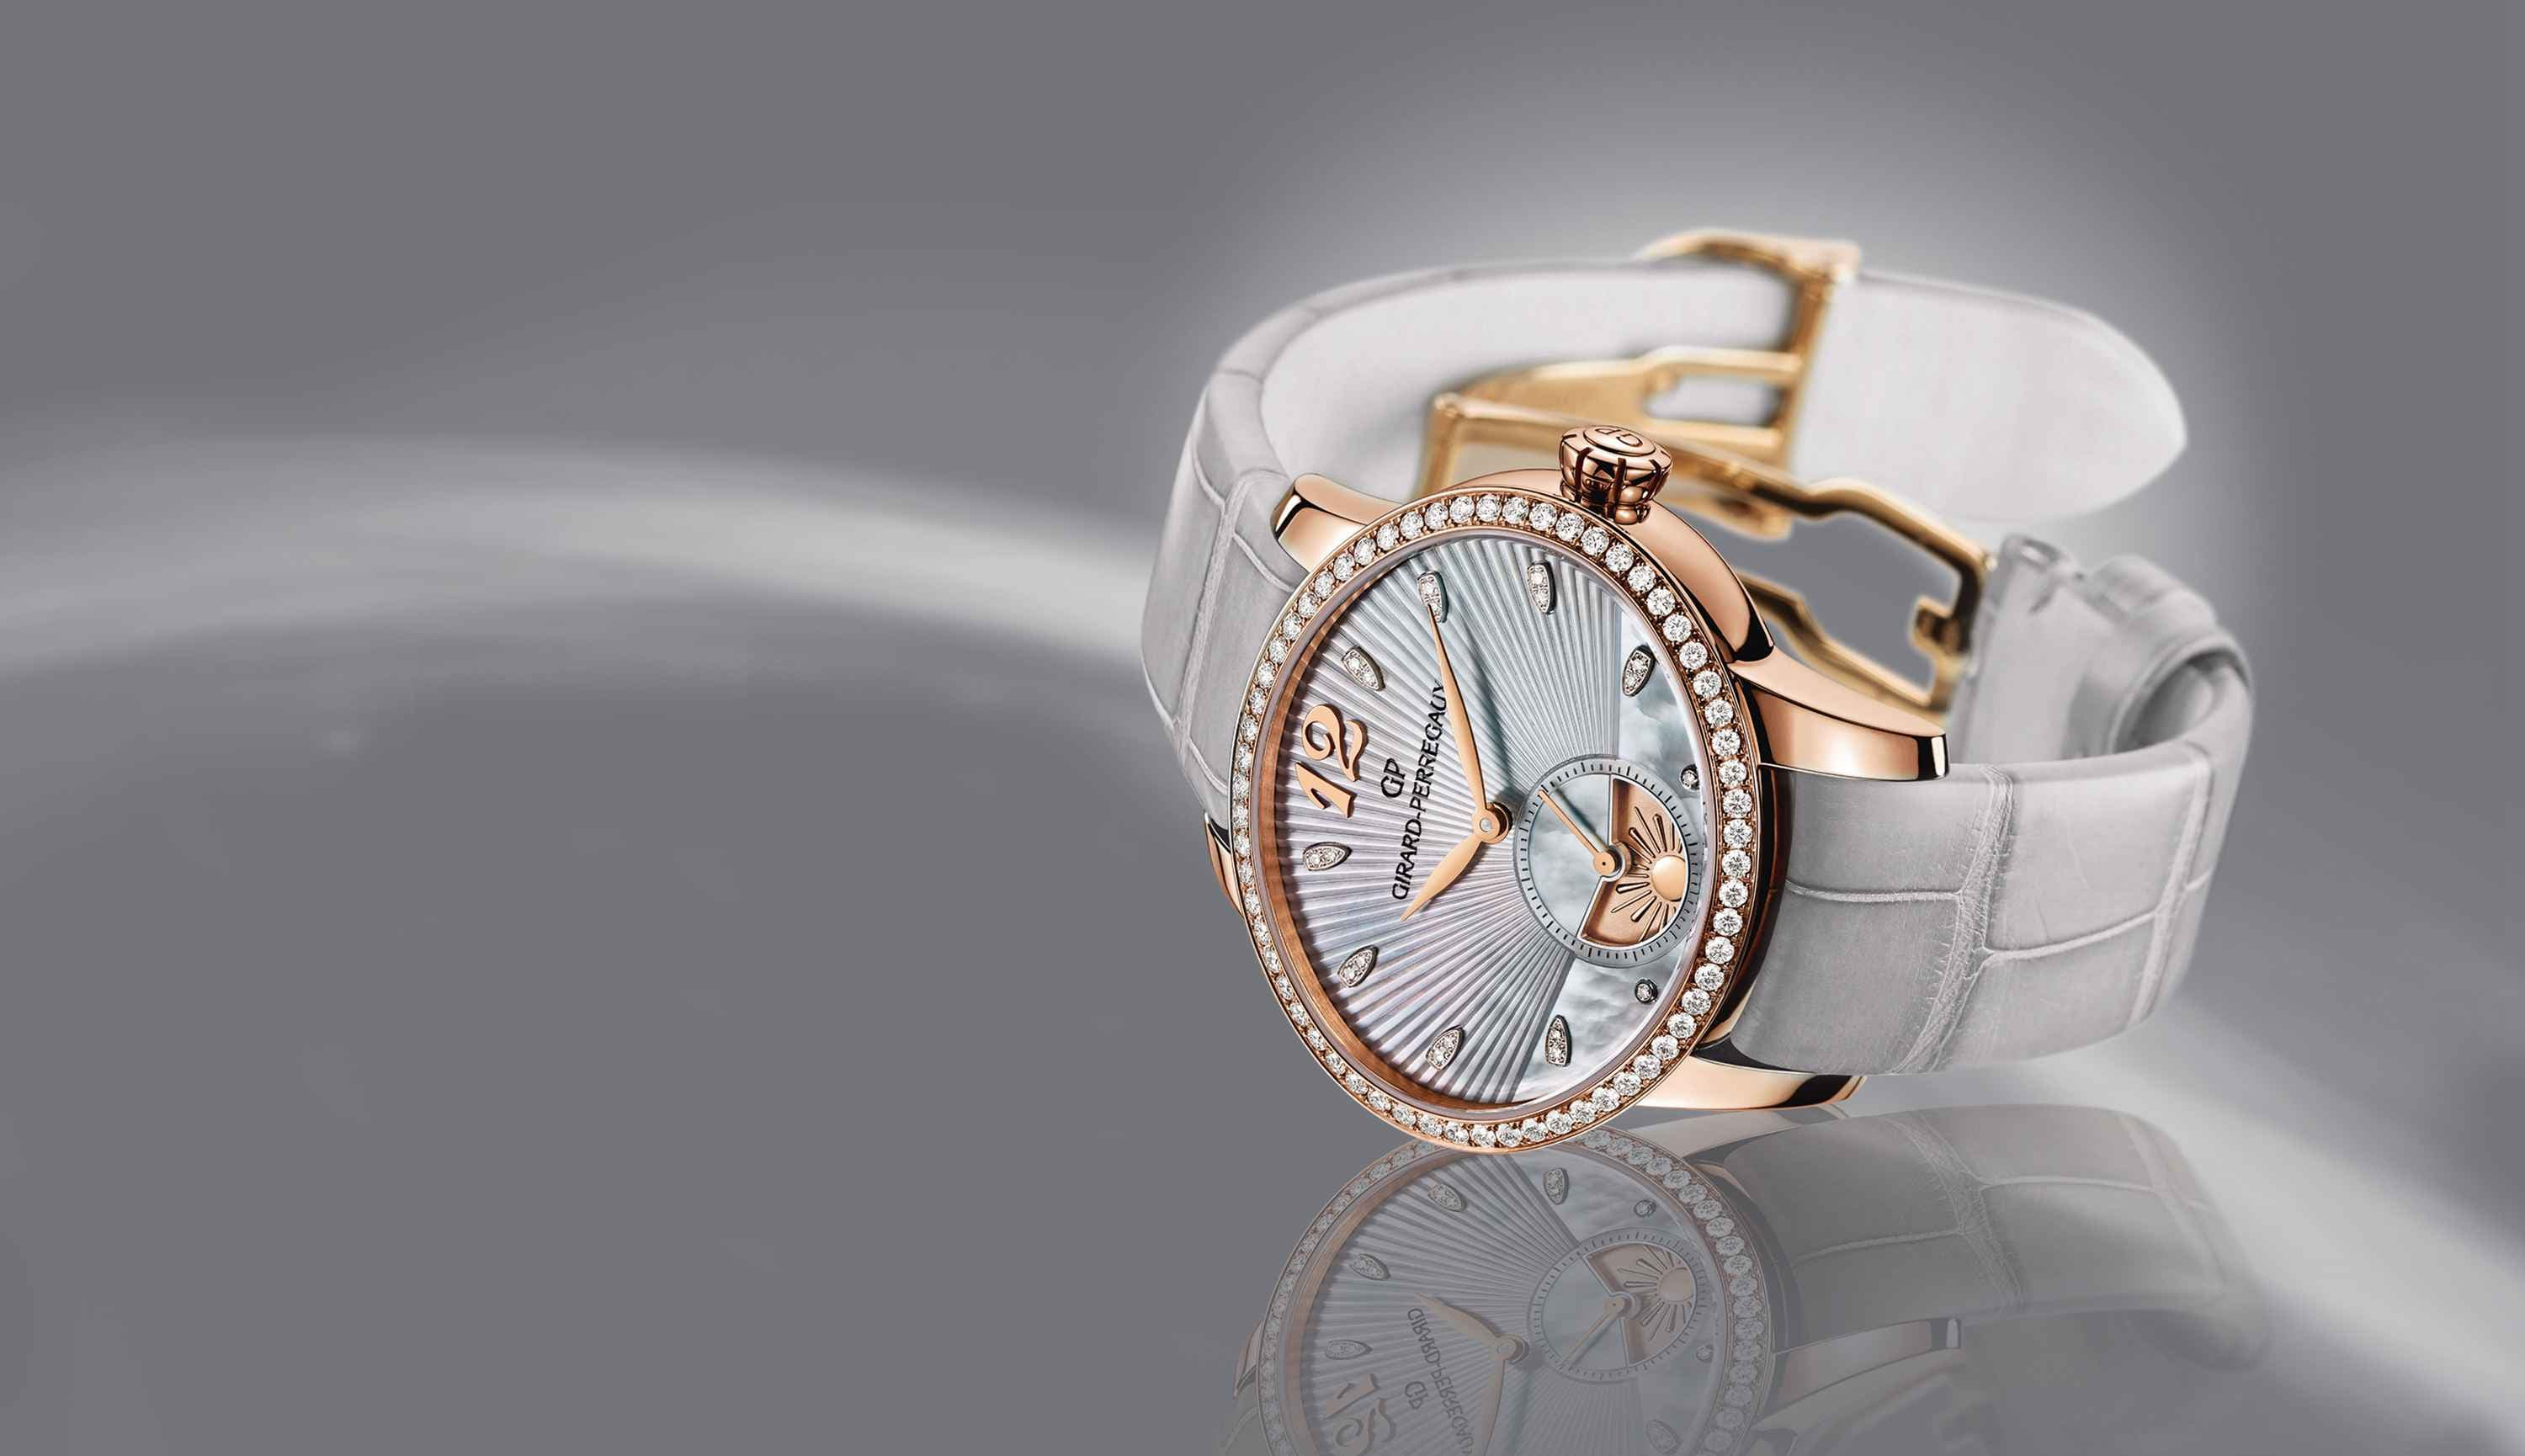 Girard-Perregaux Cat's Eye